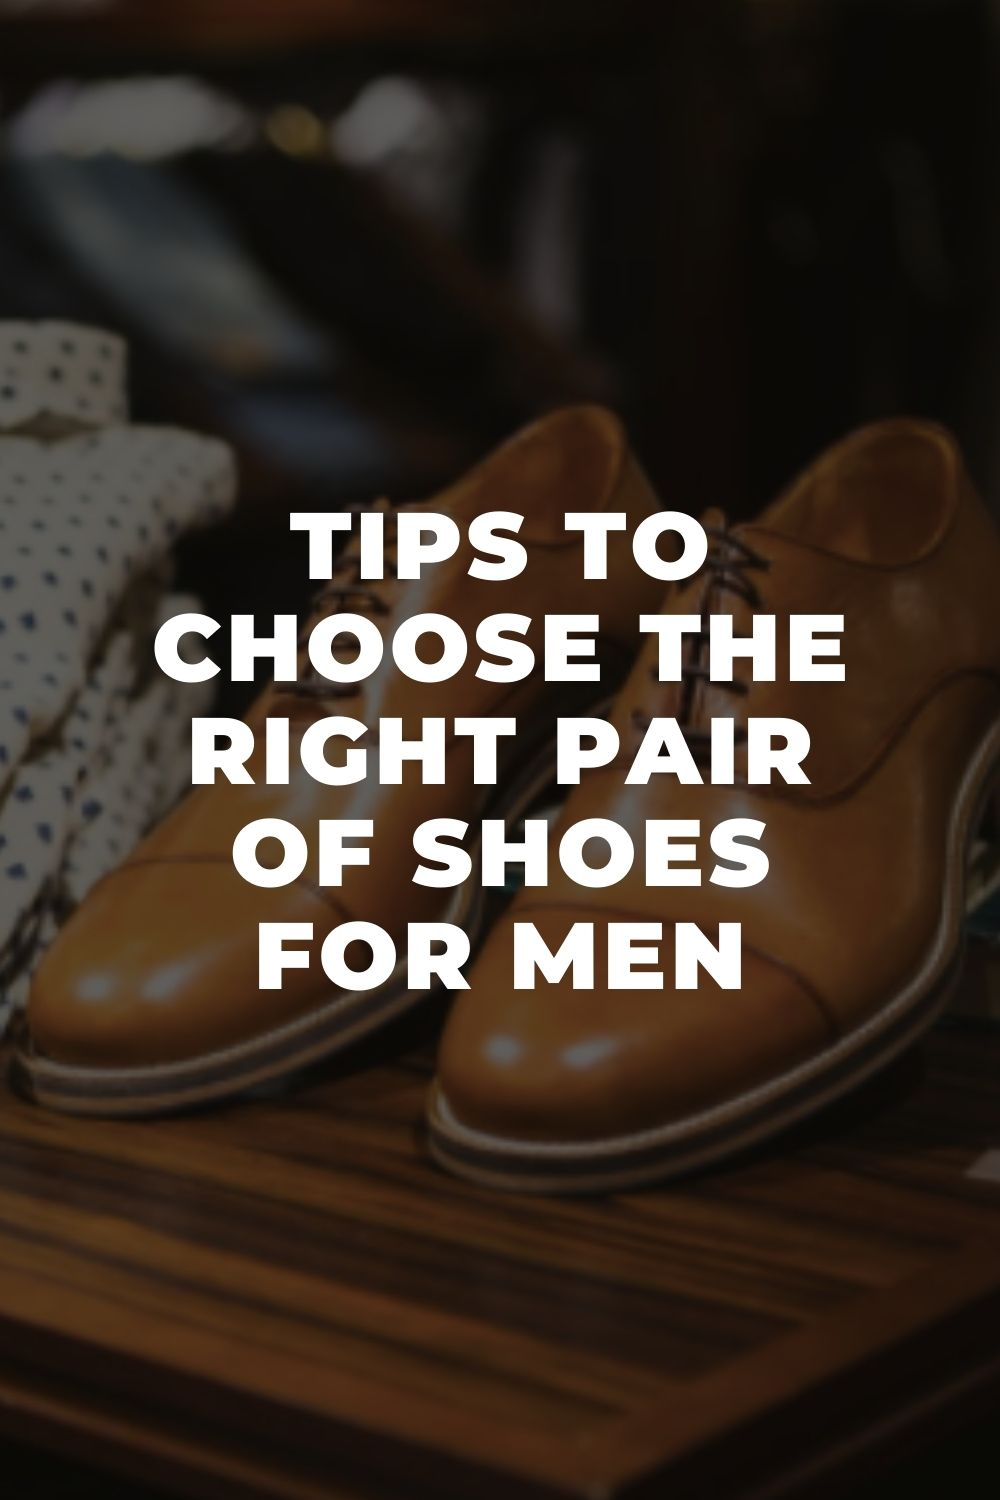 Tips to Choose The Right Pair of Shoes For Men